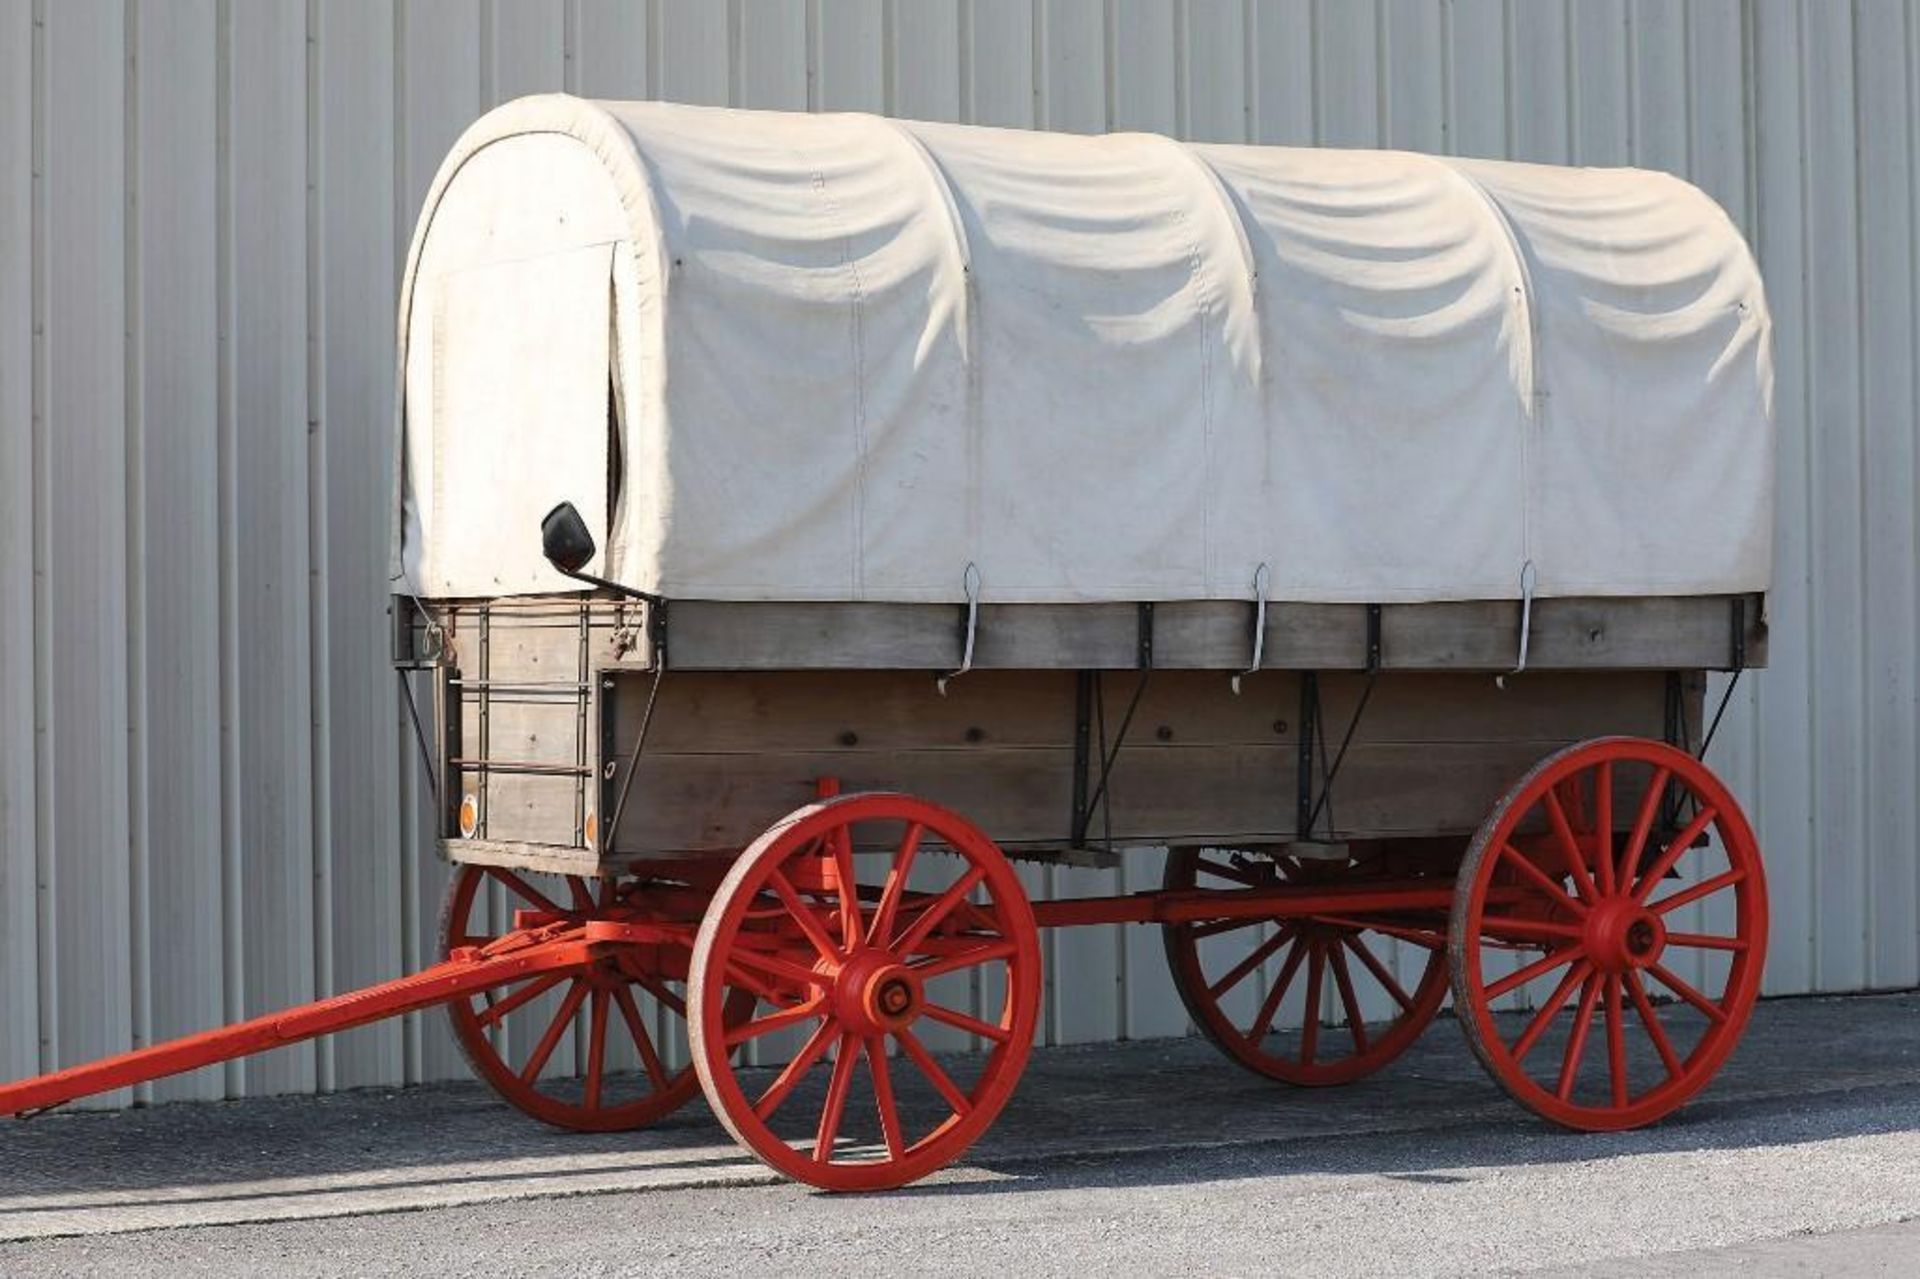 TURNBULL Covered Wagon - Image 2 of 2